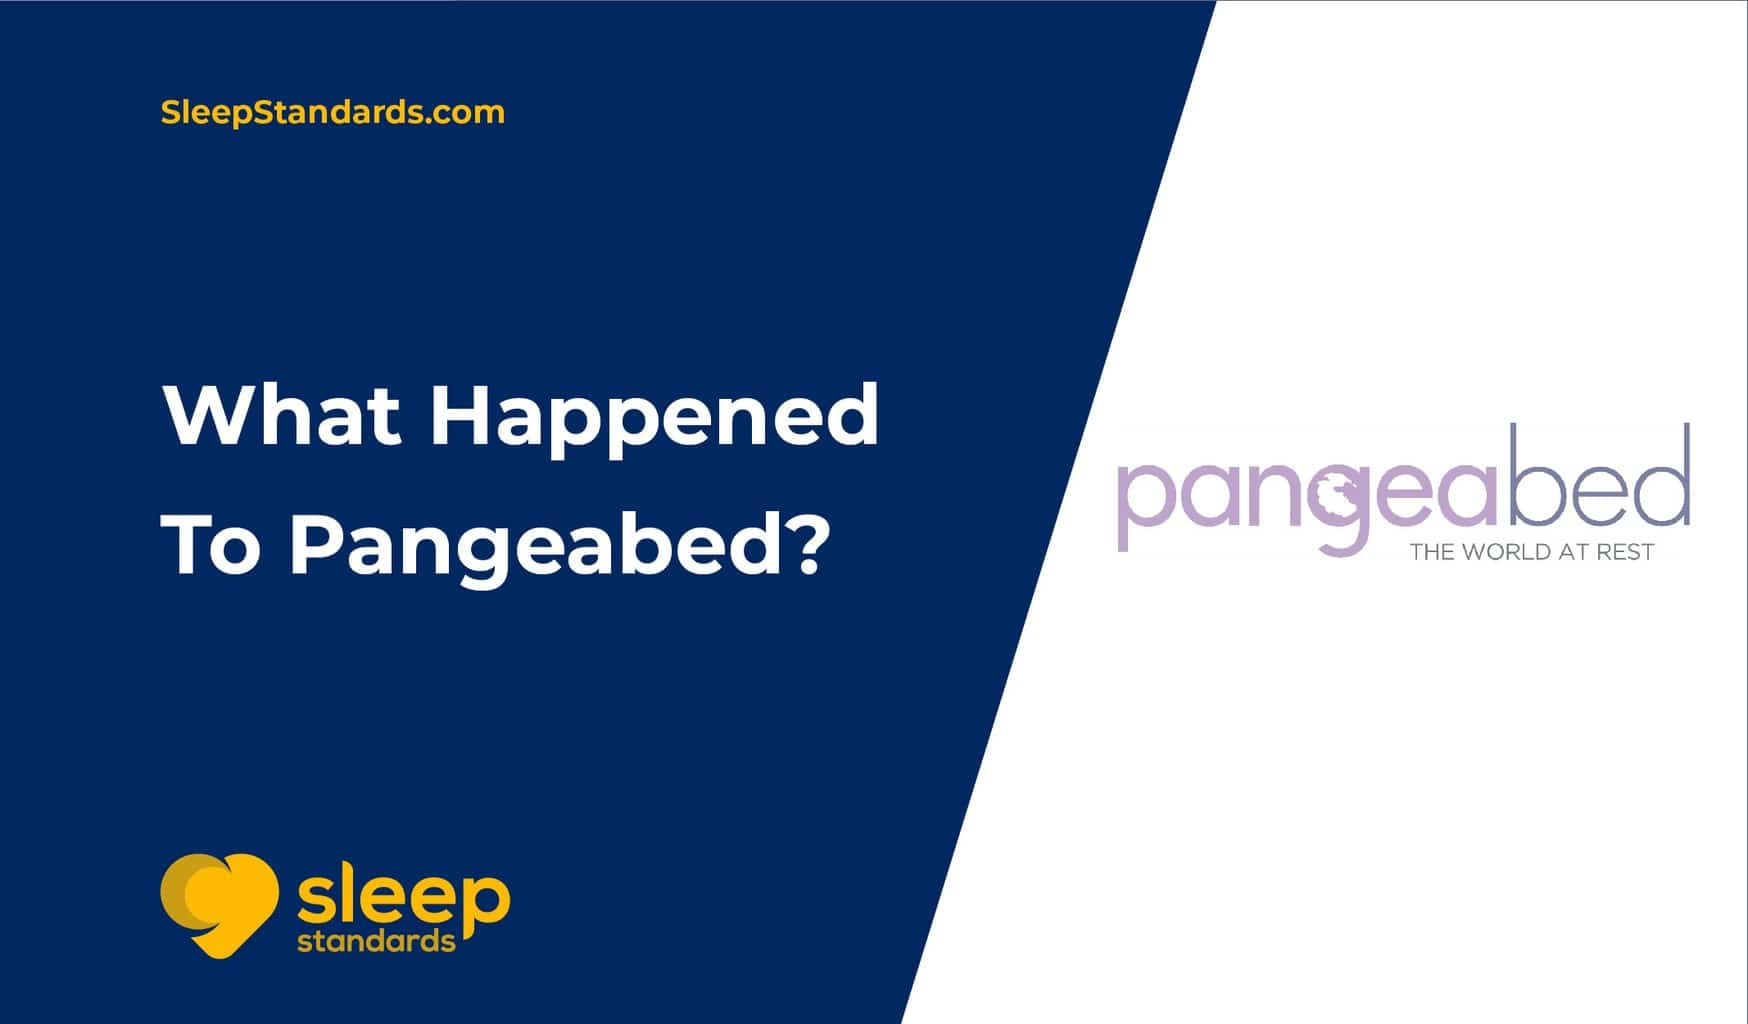 What happened to Pangeabed?